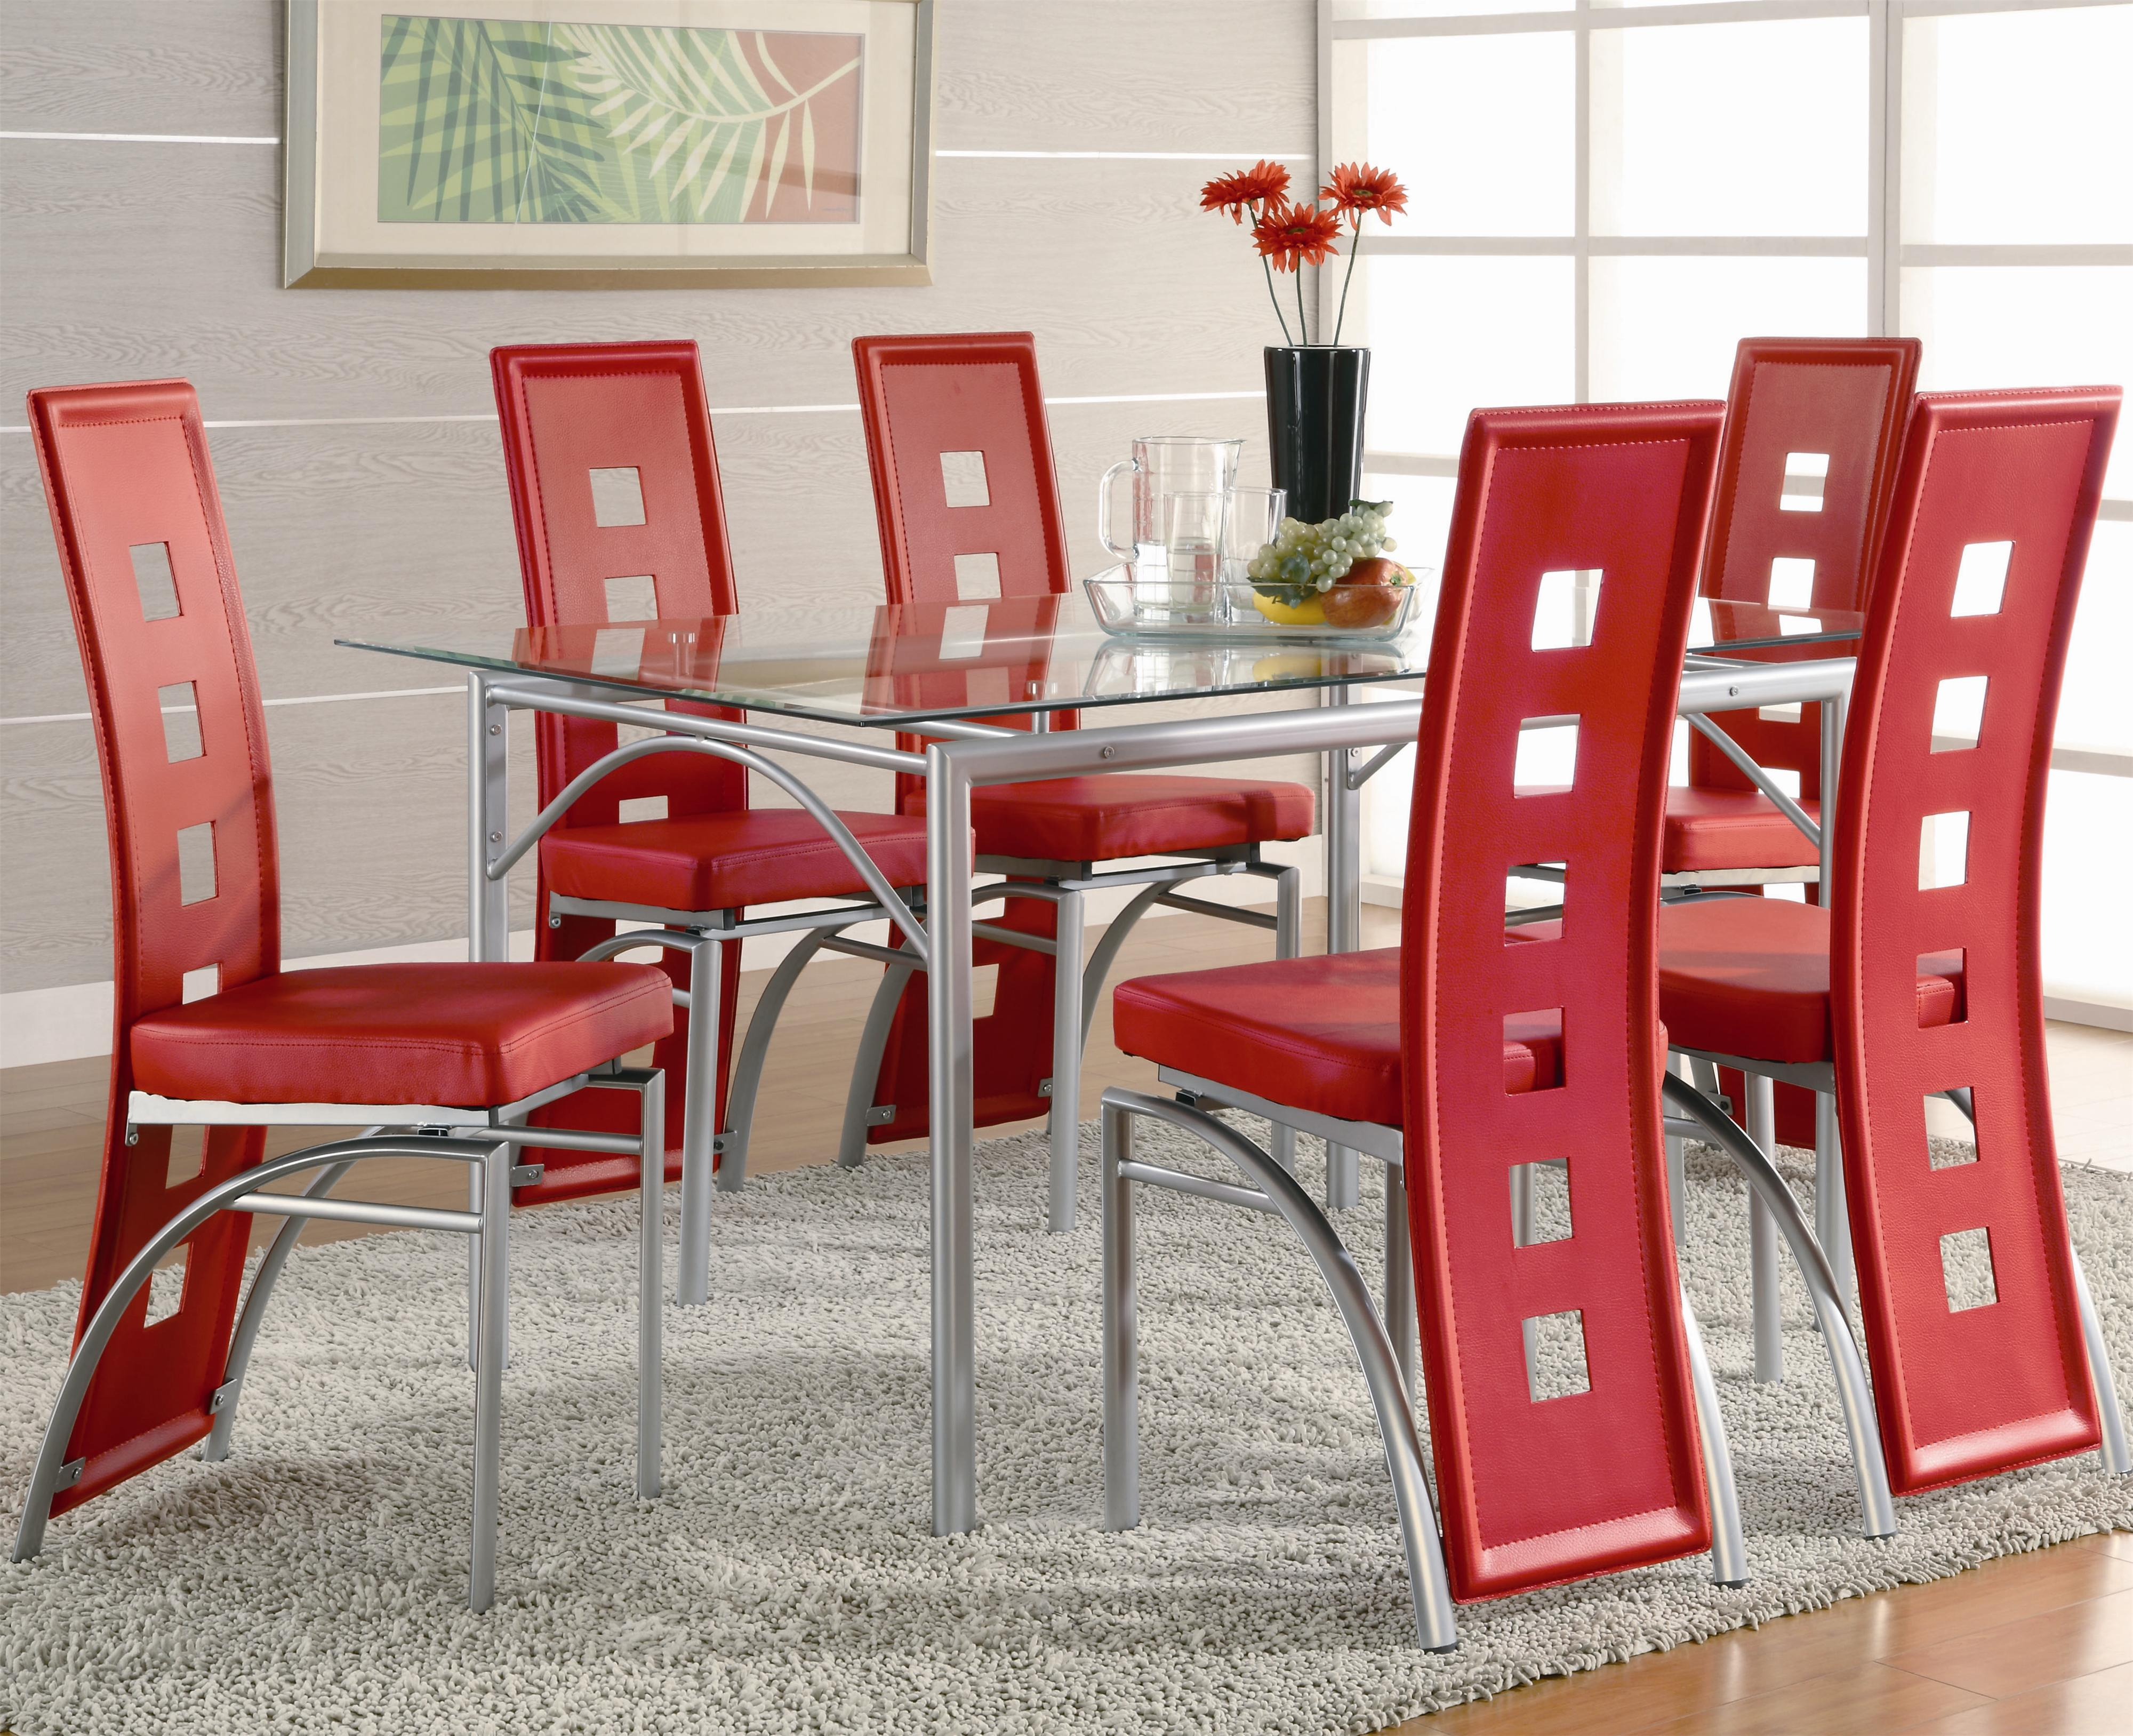 Glass Dining Table And Chairs Los Feliz Contemporary Metal Dinner Table And Red Upholstered Chairs By Coaster At Dunk Bright Furniture